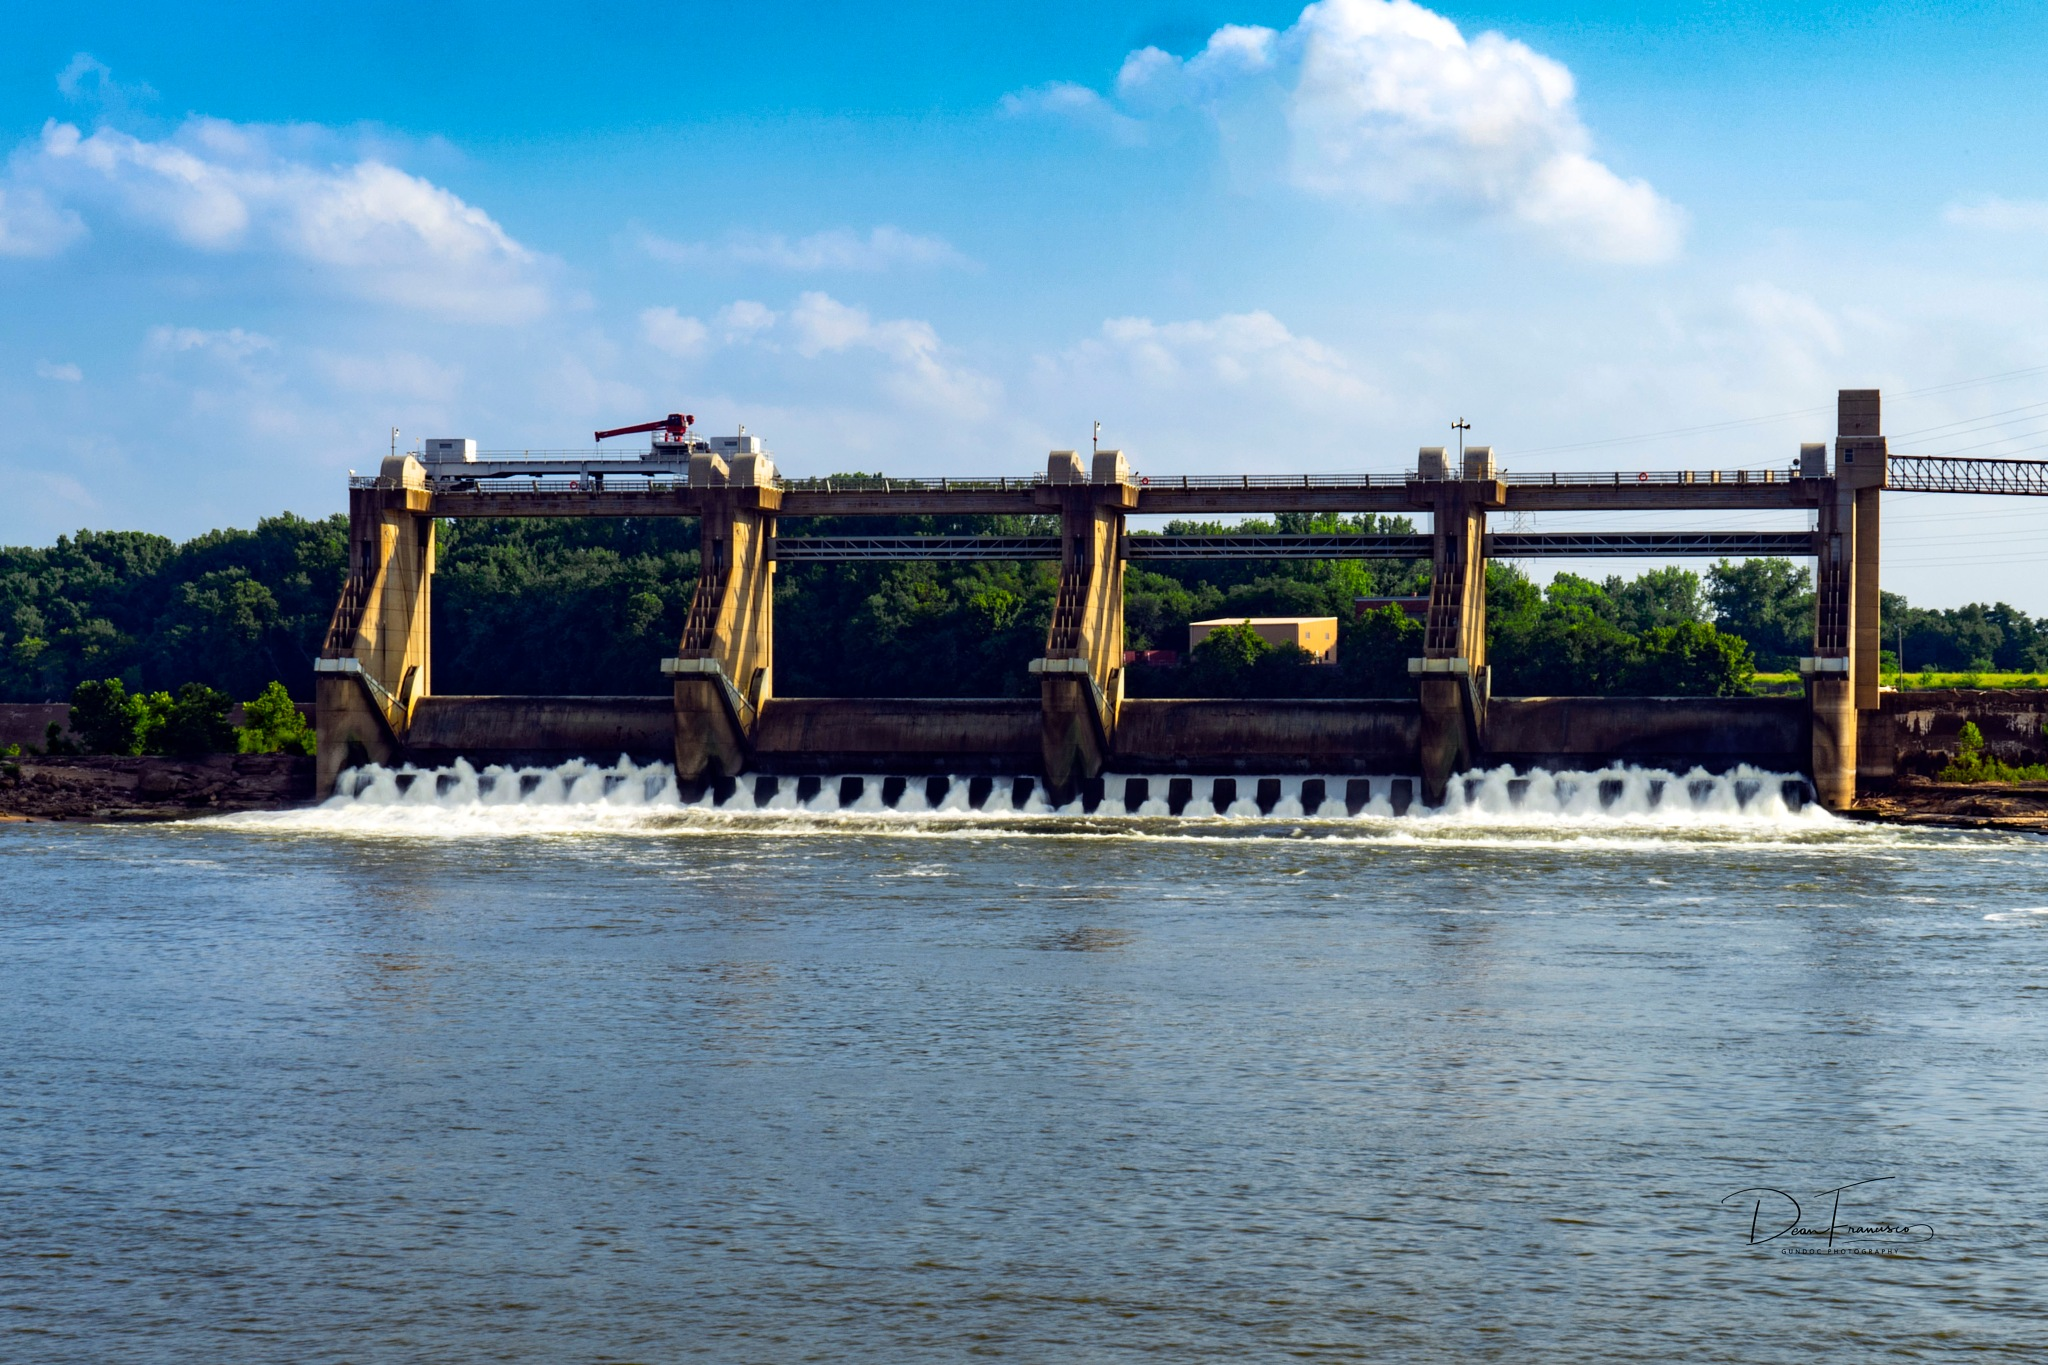 Lower gates of McAlpine lock and dam. by Dean Francisco